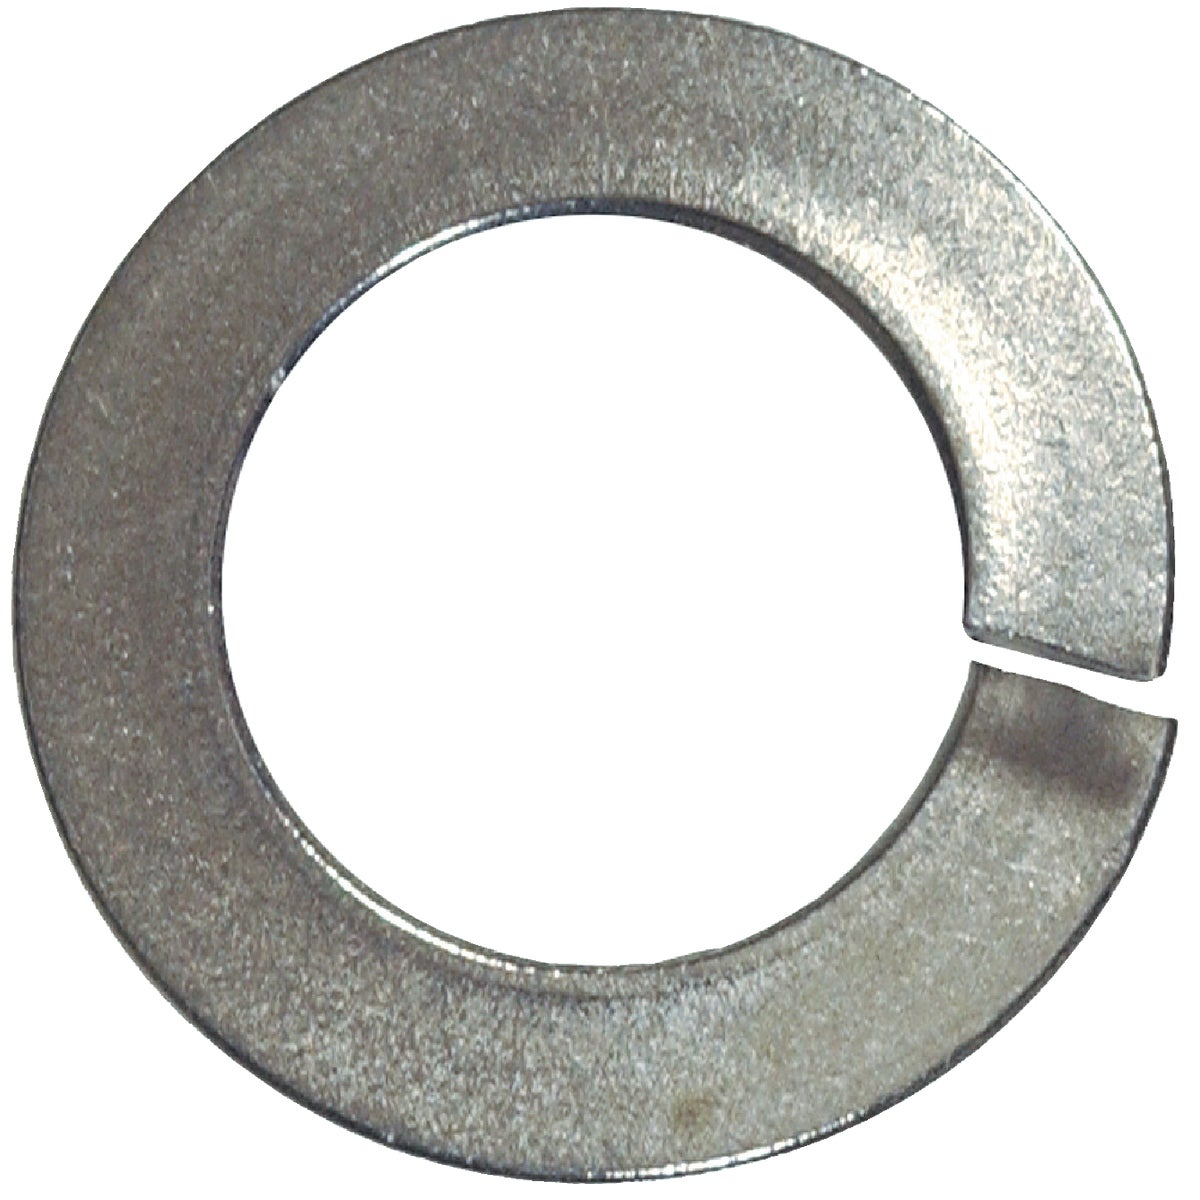 #8 SS SPLIT LOCK WASHER - 830660 by Hillman Fastener